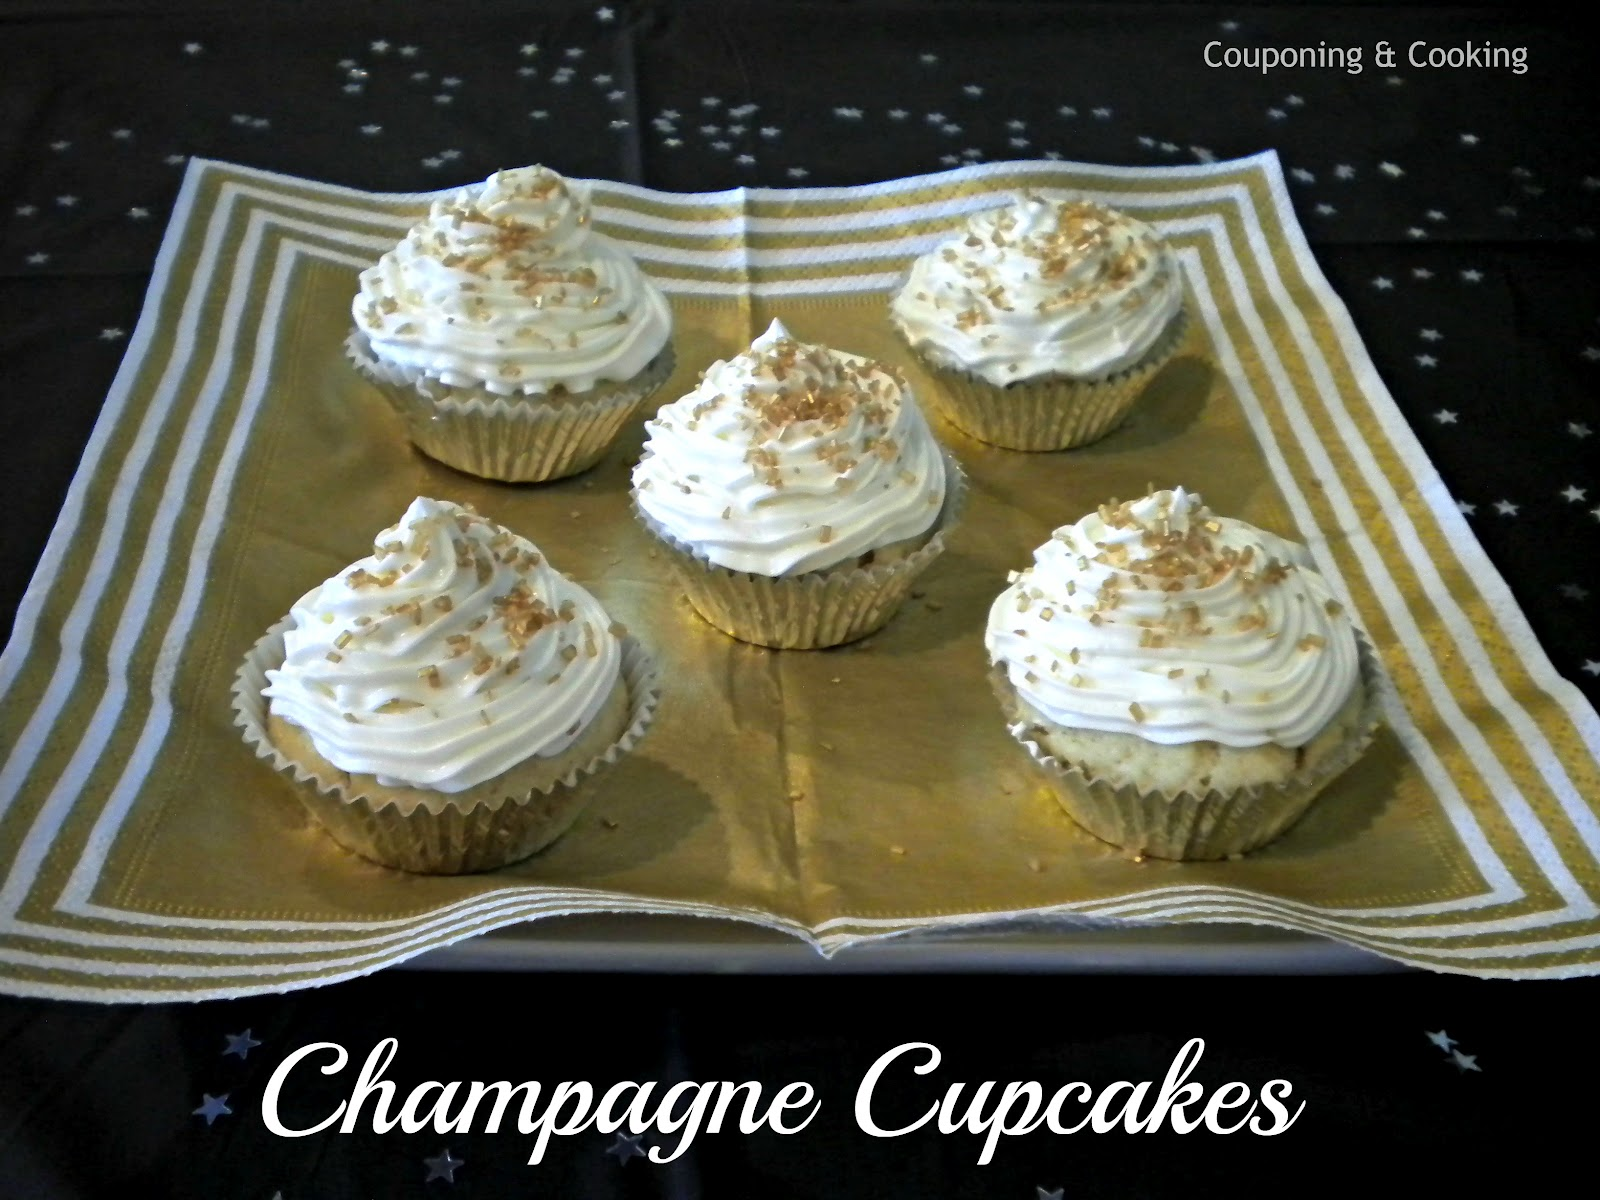 Champagne Cupcakes!